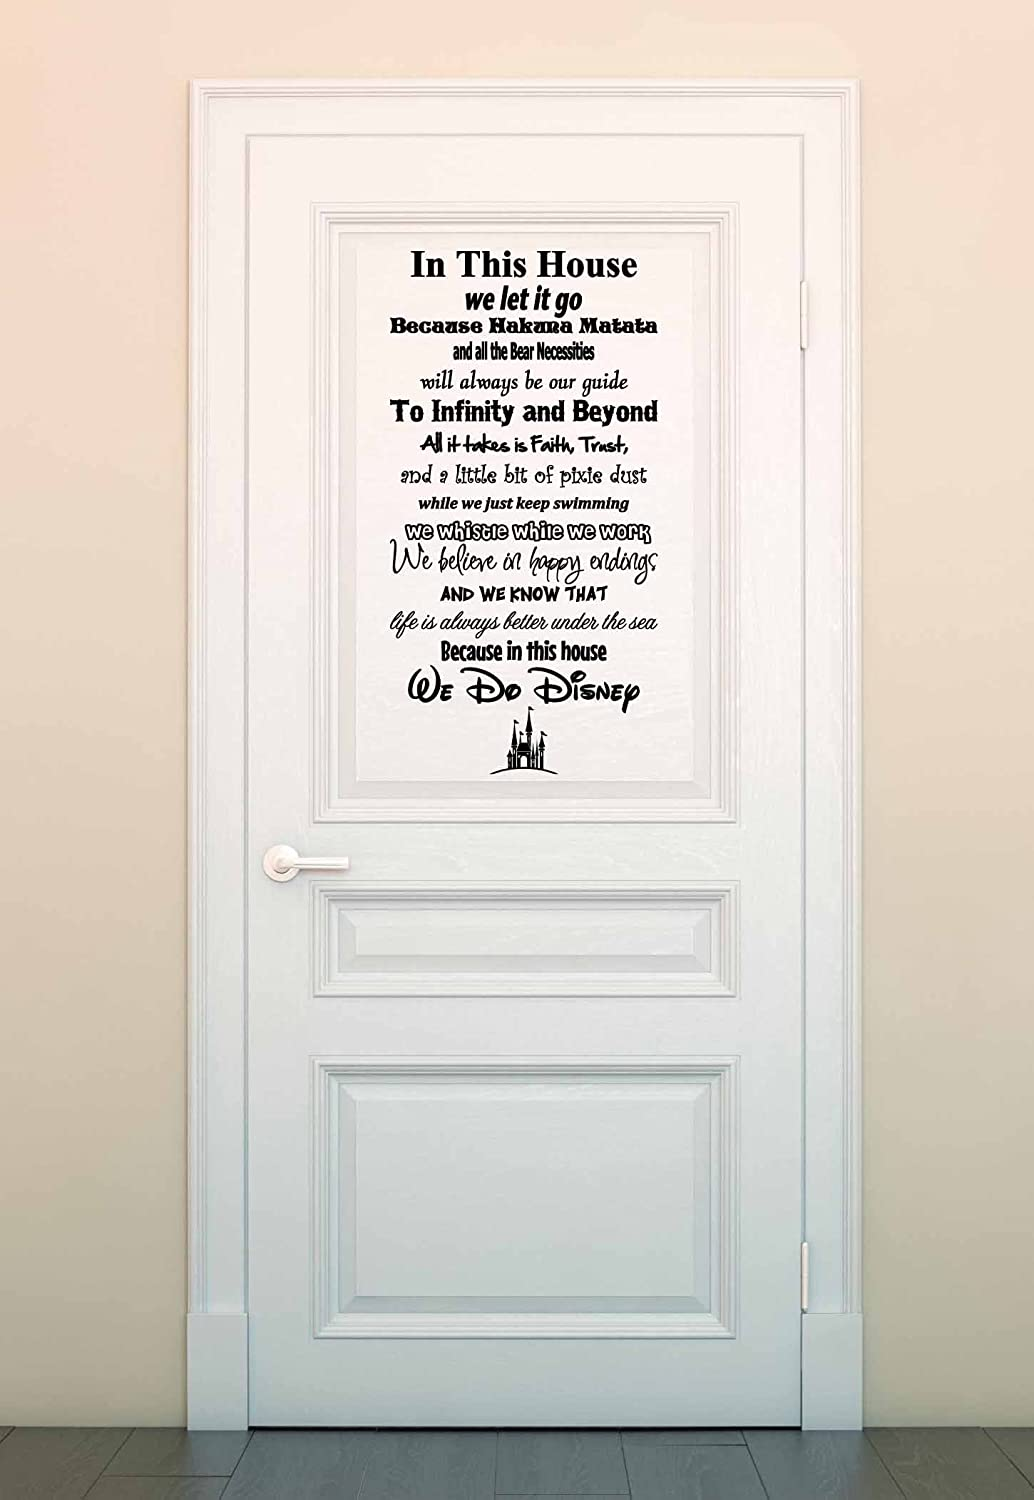 Amazon in this house we do disney vinyl wall decal sticker amazon in this house we do disney vinyl wall decal sticker made in usa disney family house rules 11 x 22 black home kitchen amipublicfo Choice Image